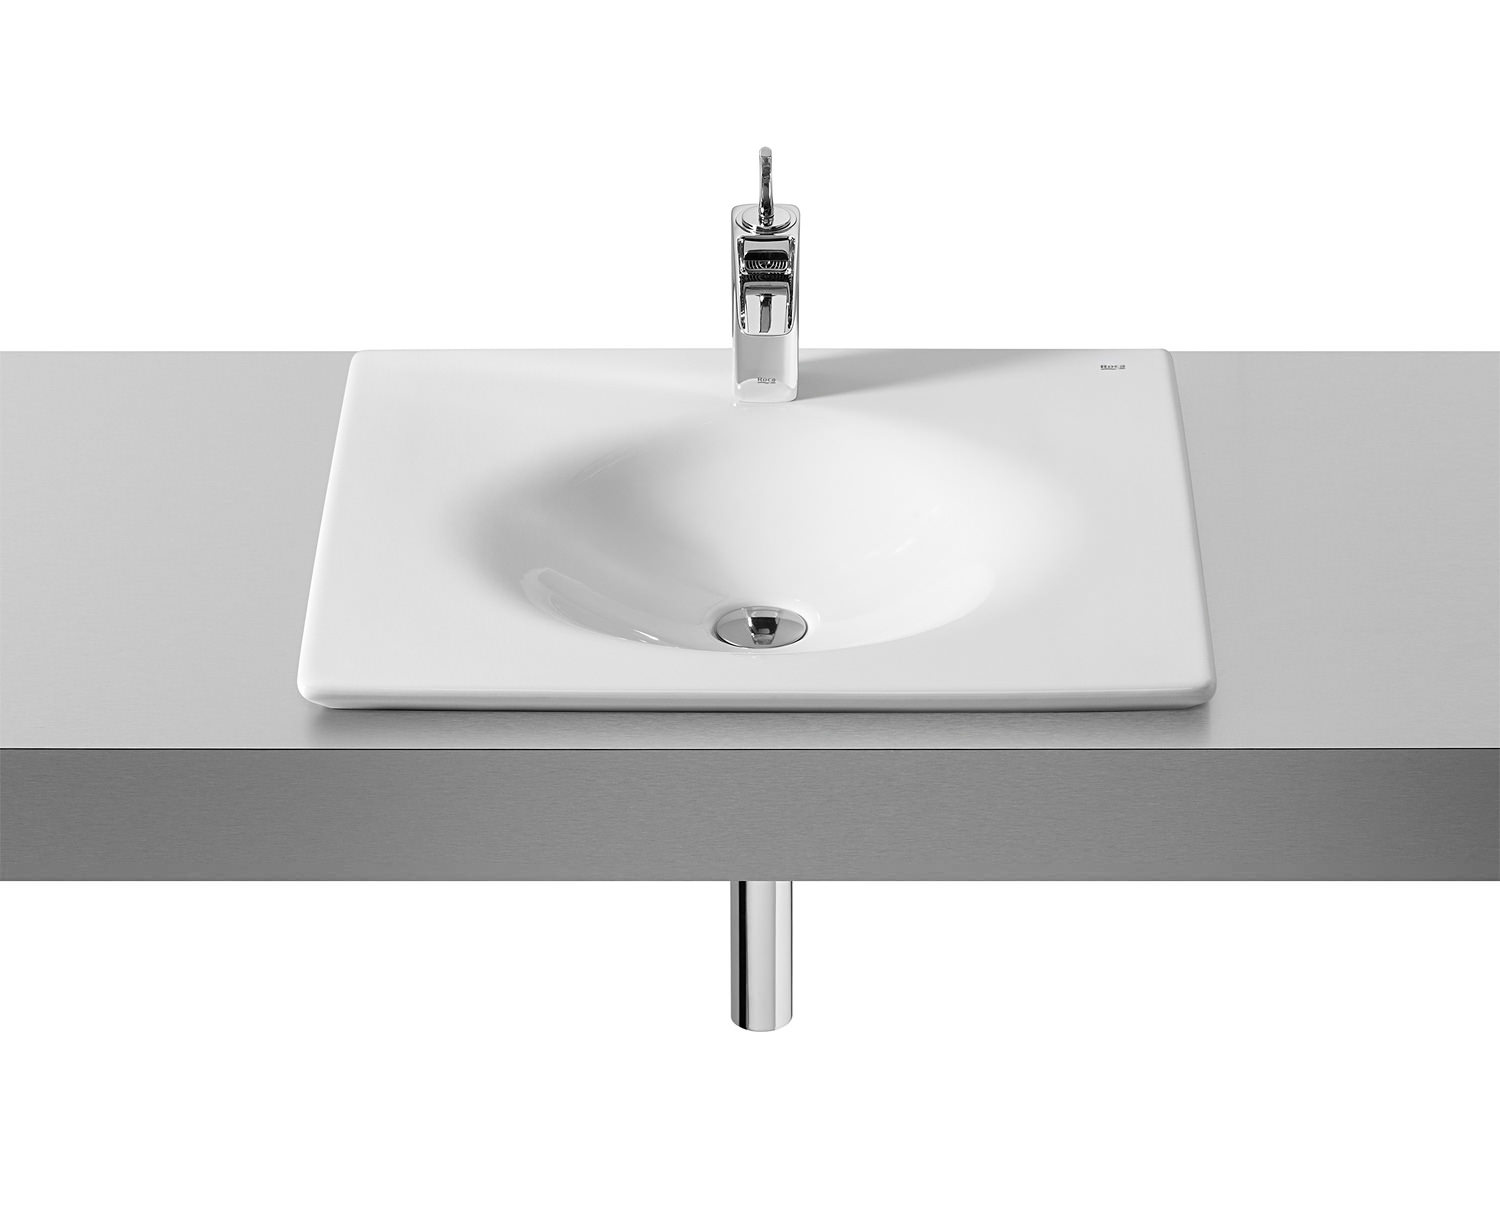 Wide Illuminated Bathroom Mirror With Backlit Effect For Double Or Wide Basins: Roca Kalahari In-Countertop Basin 590mm Wide